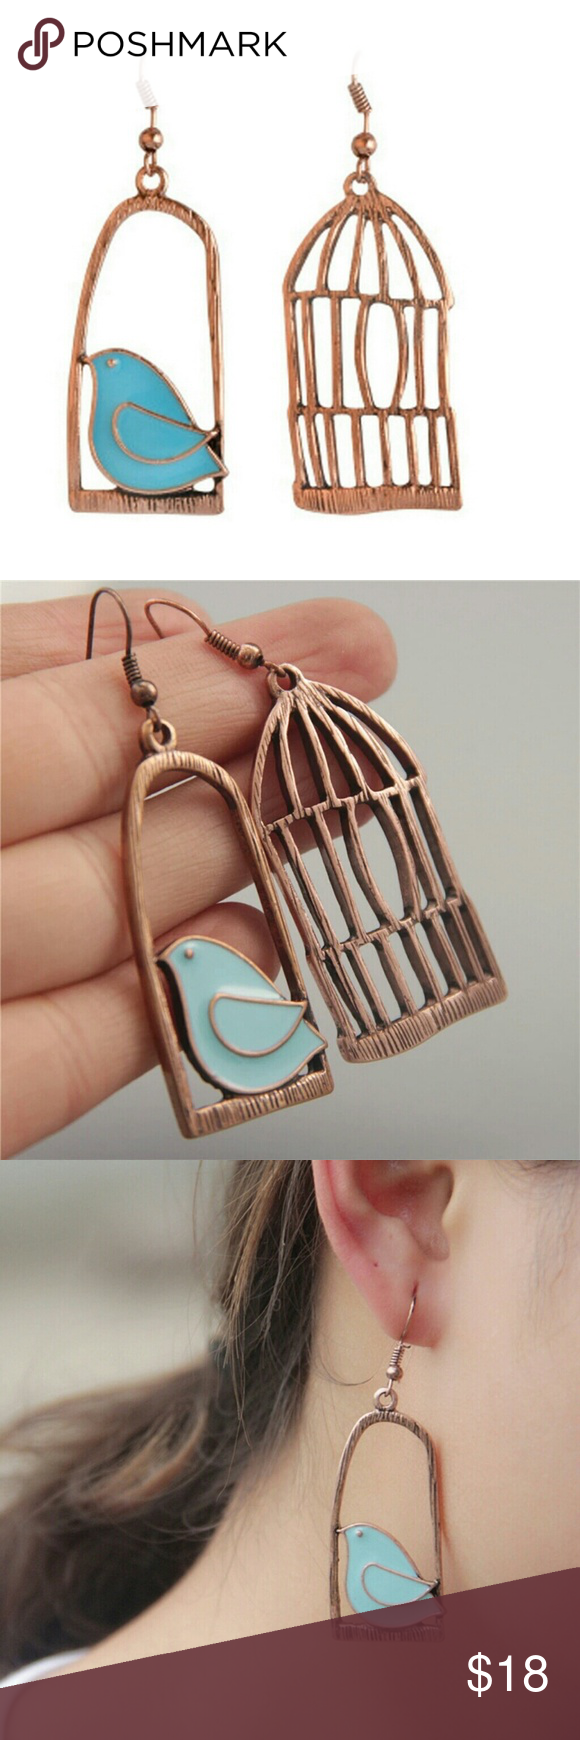 Bird And Cage Earrings Unique Earrings Bird Earrings Unique Costumes